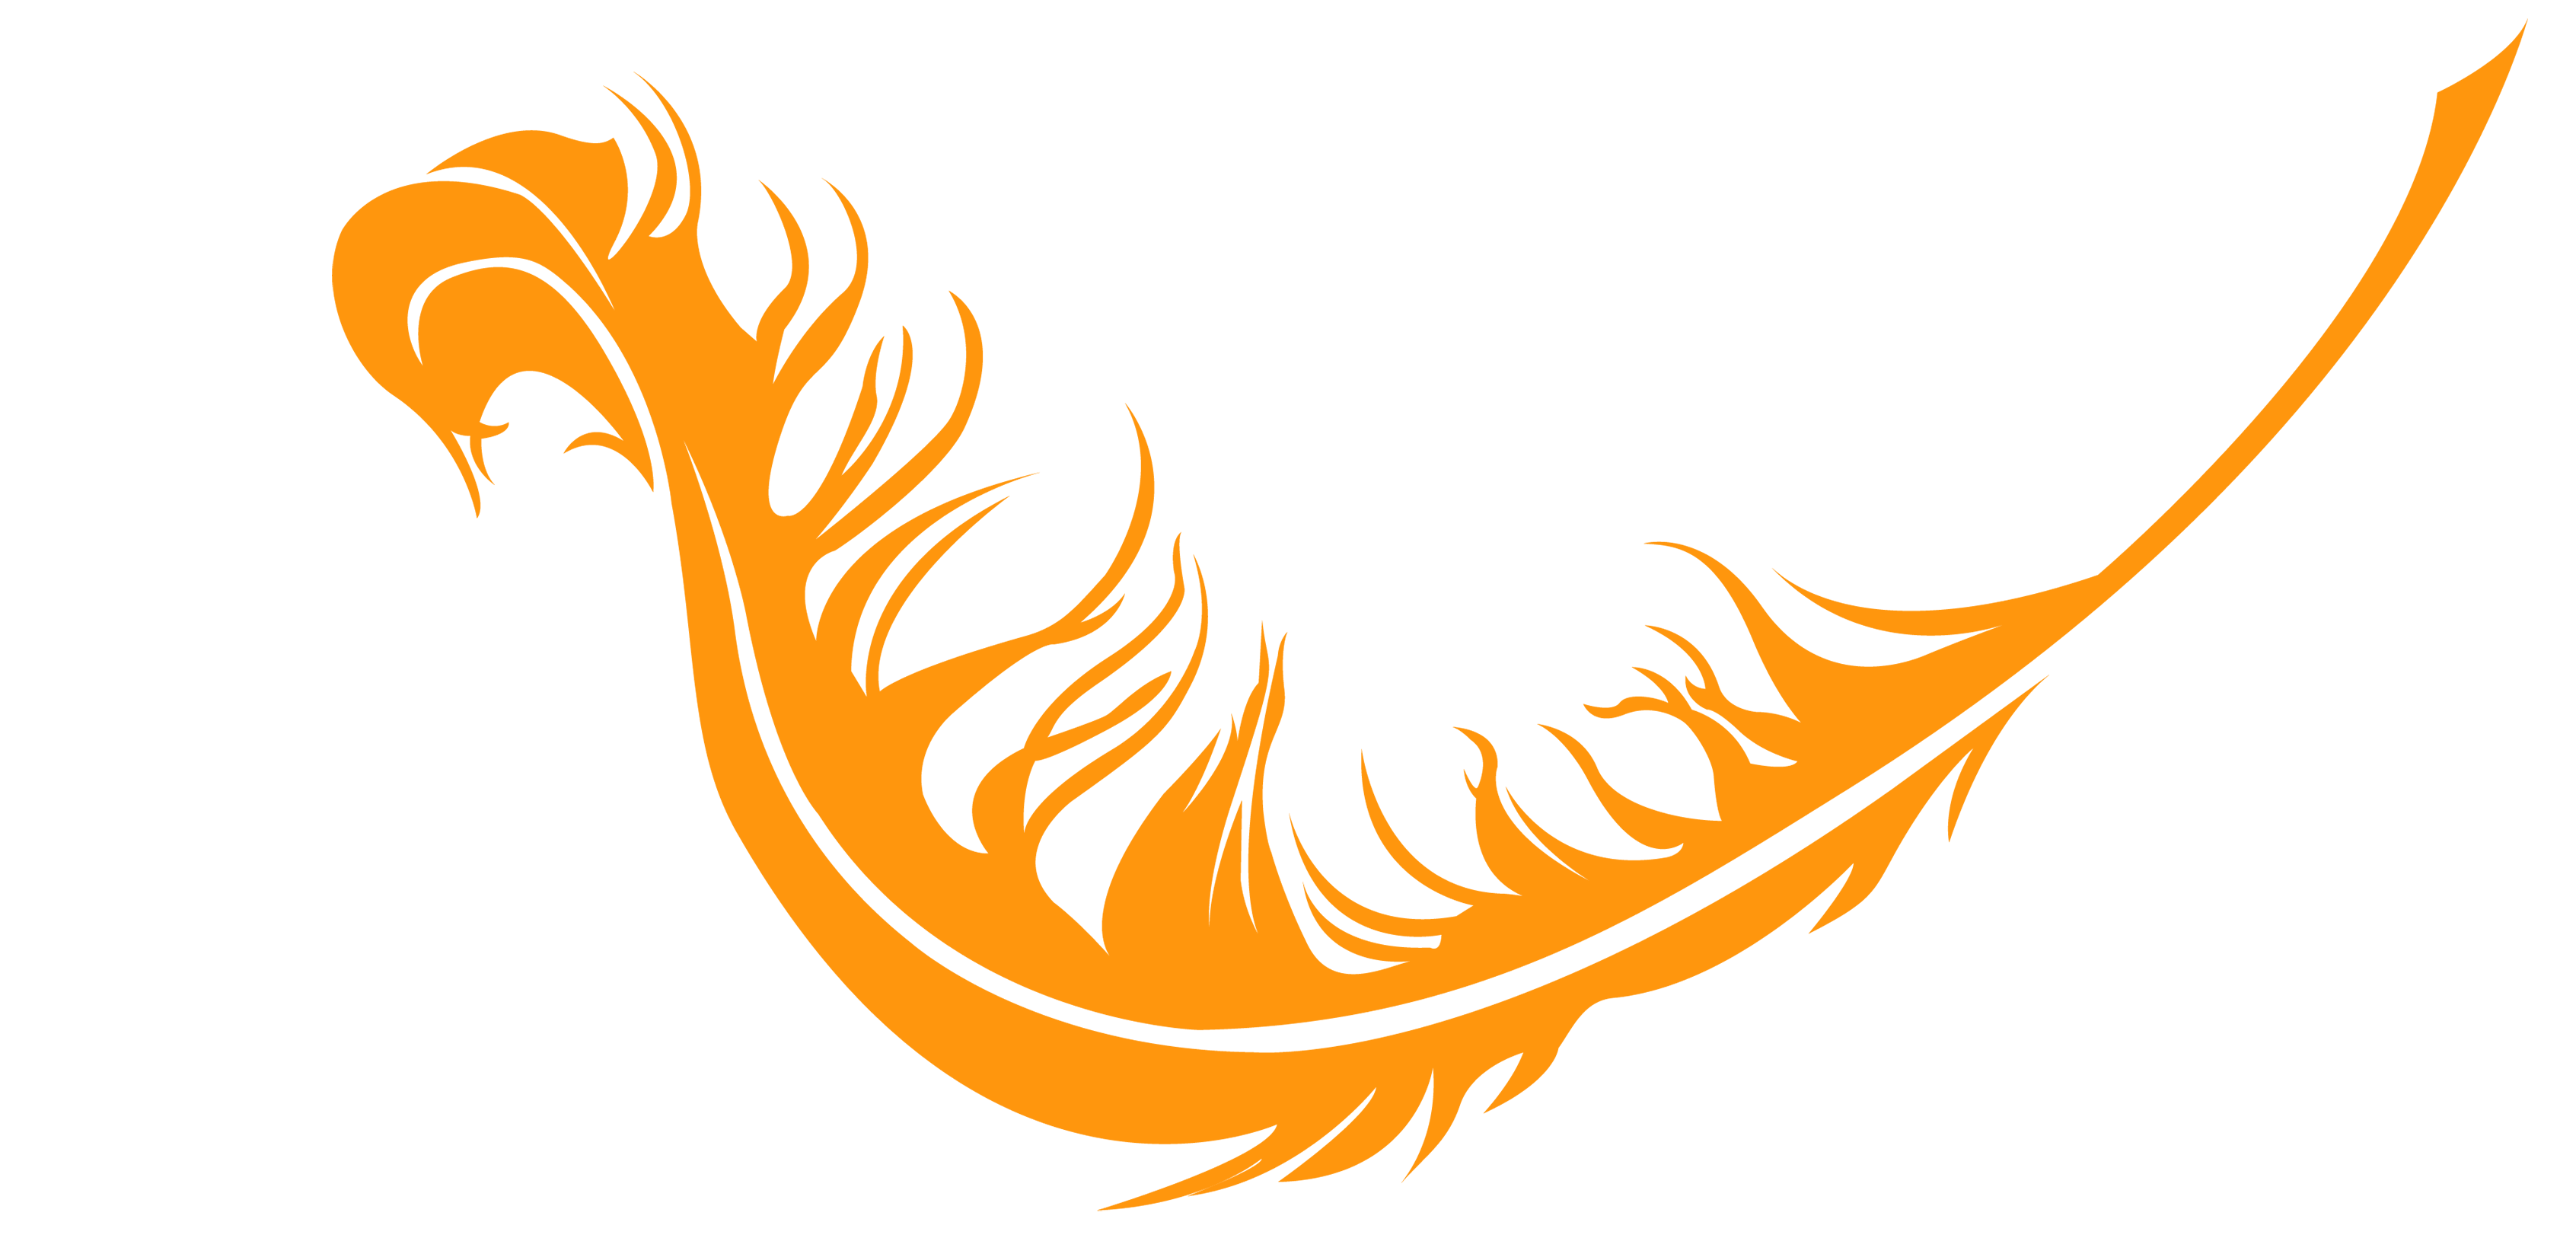 Phoenix Feather Wonderful Picture Images PNG Images